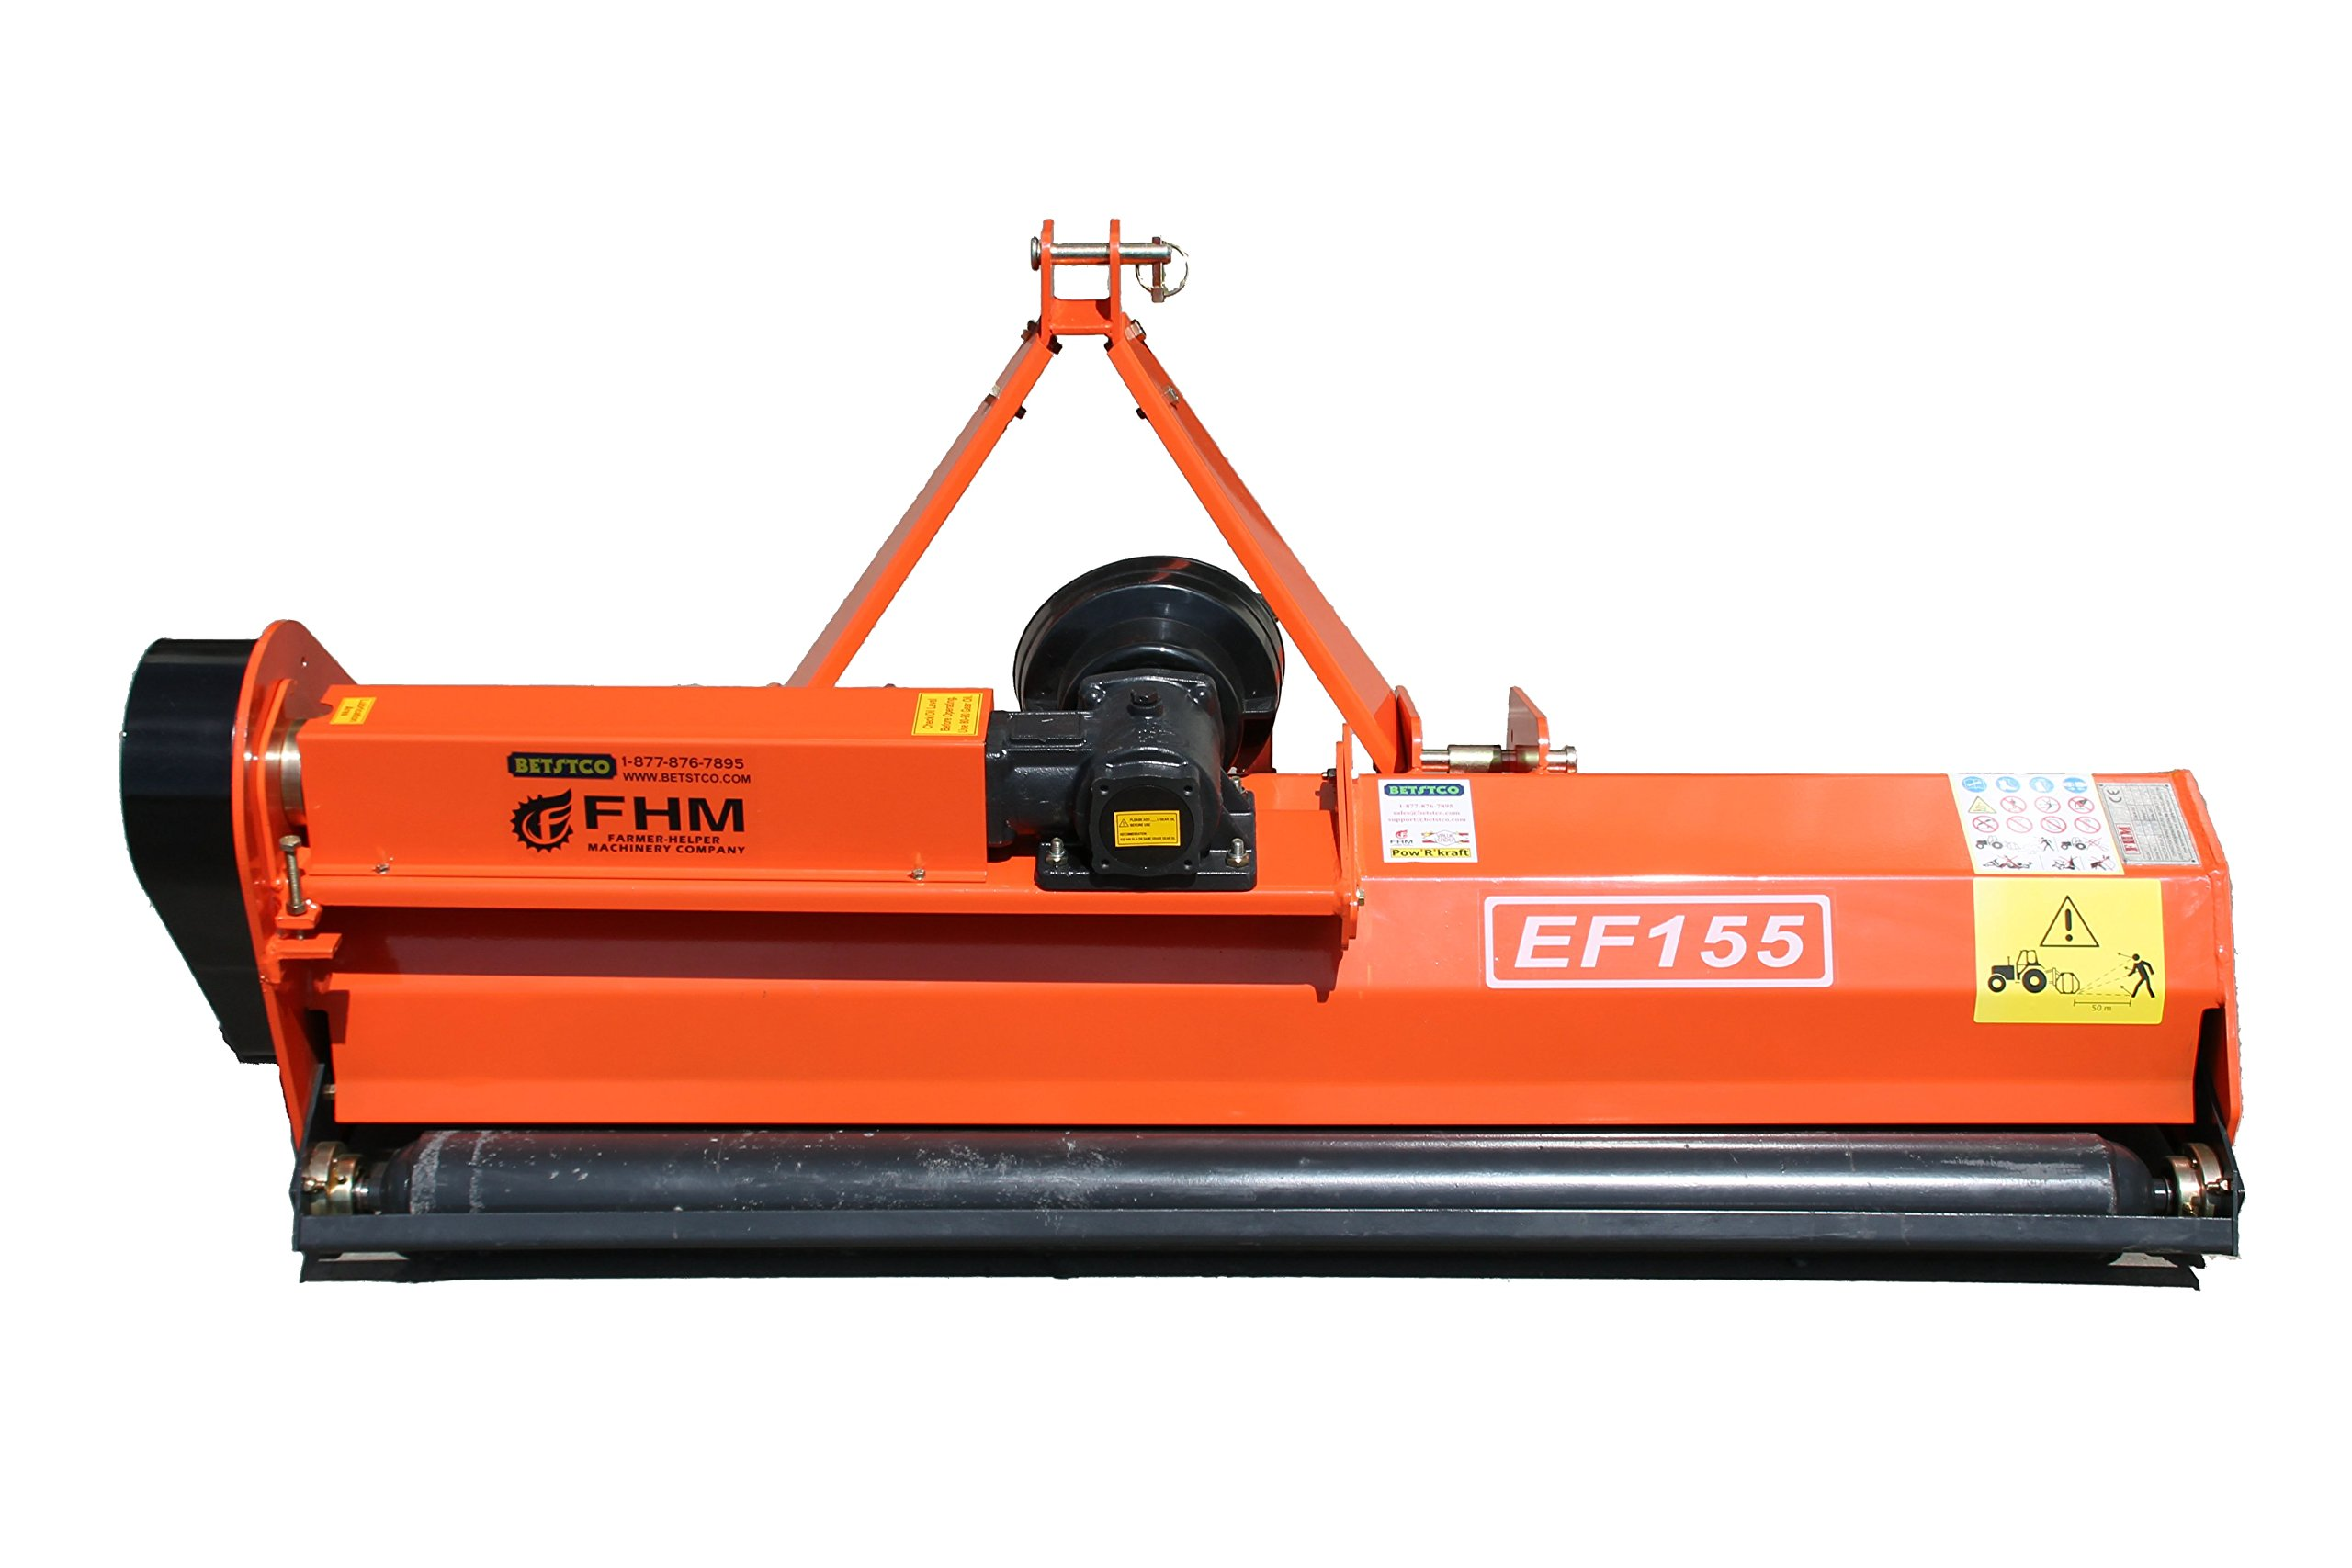 Farmer Helper 60'' Flail Mower Cat.I 3pt 20HP+ Rating (FH-EF155) Requires a Tractor. Not a standalone Unit.